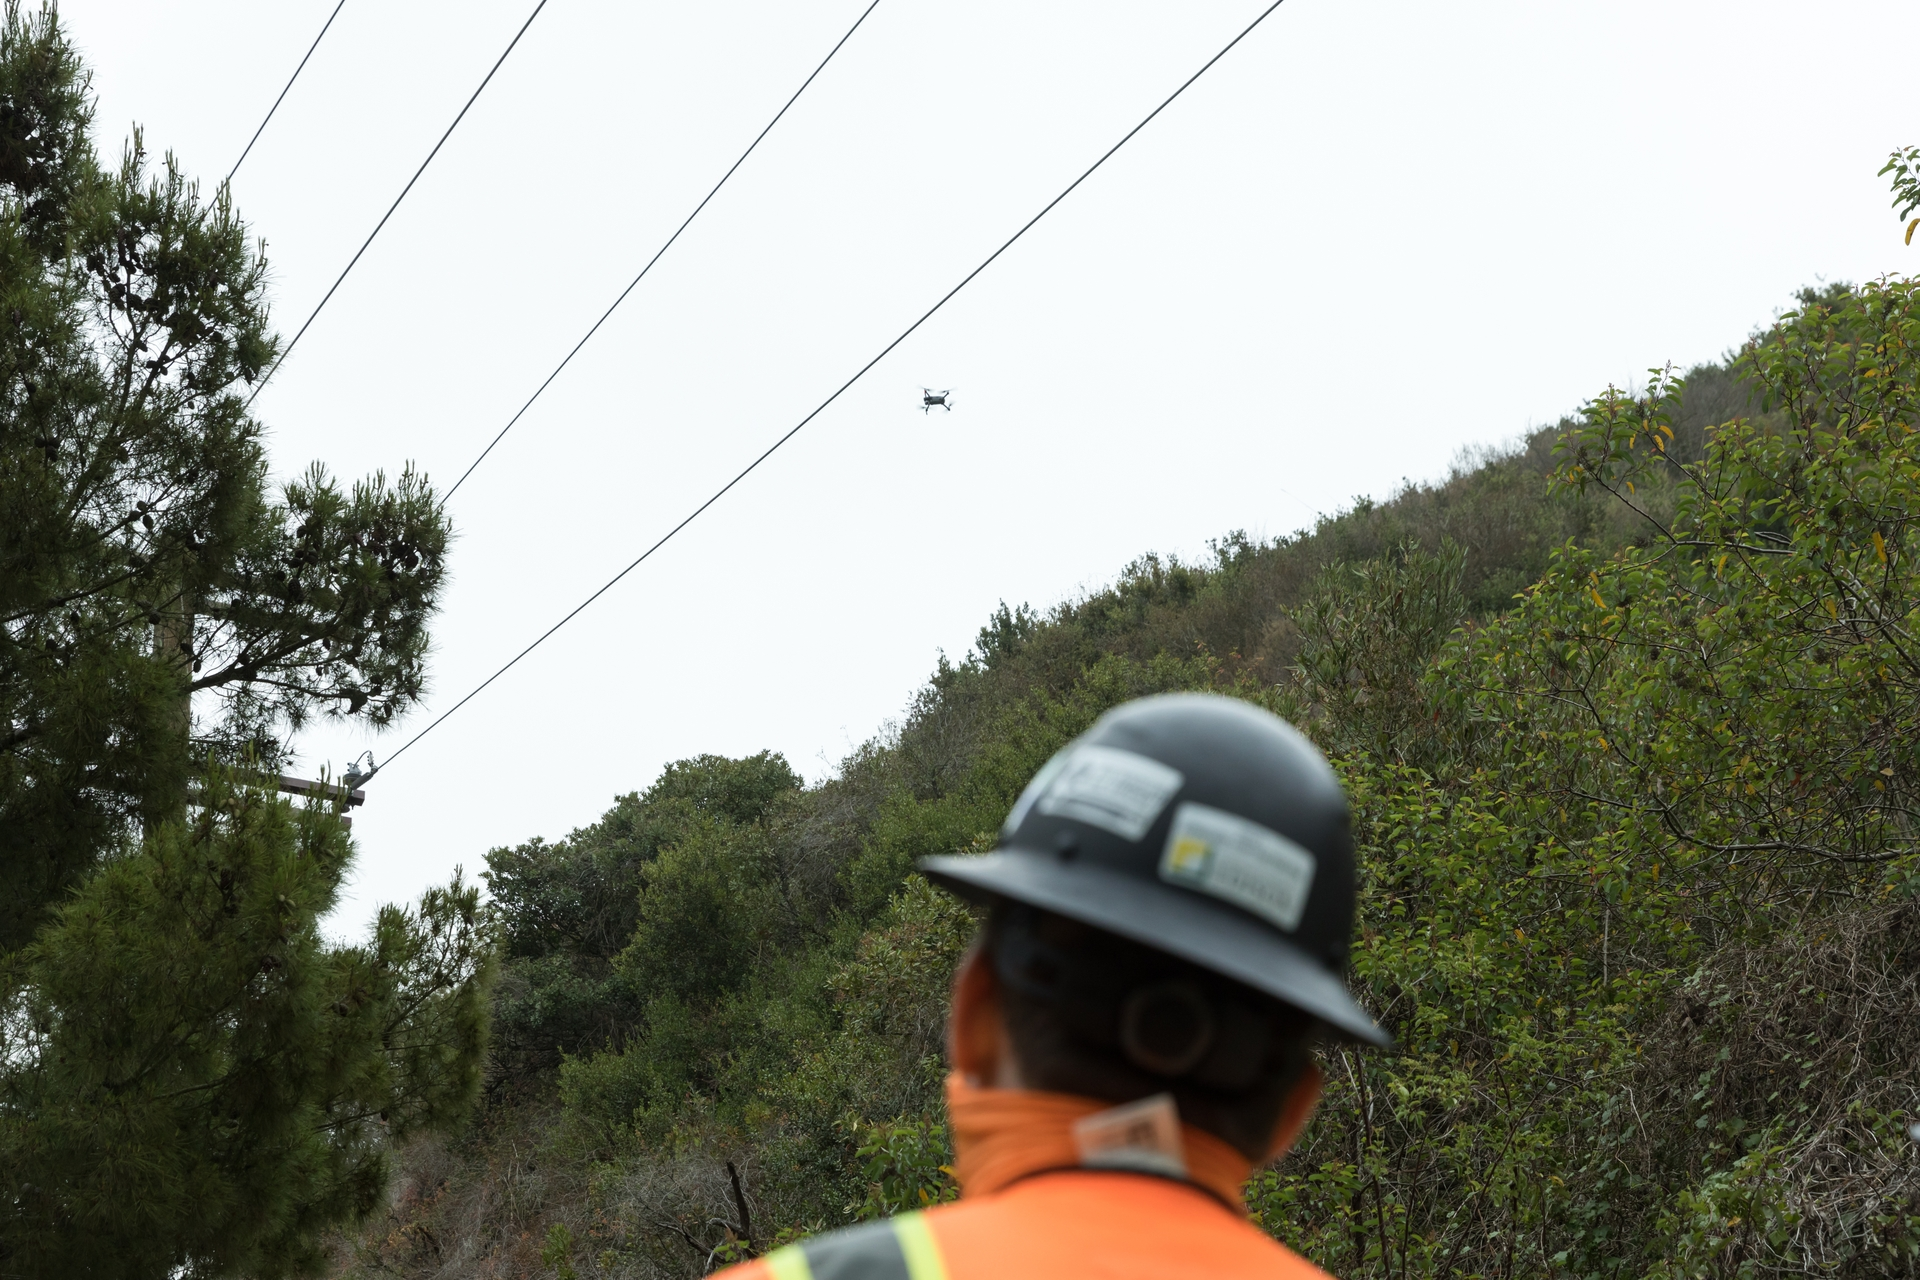 Though SCE has conducted a Beyond Visual Line of Sight pilot, operators still only fly drones for inspections within their line of sight.